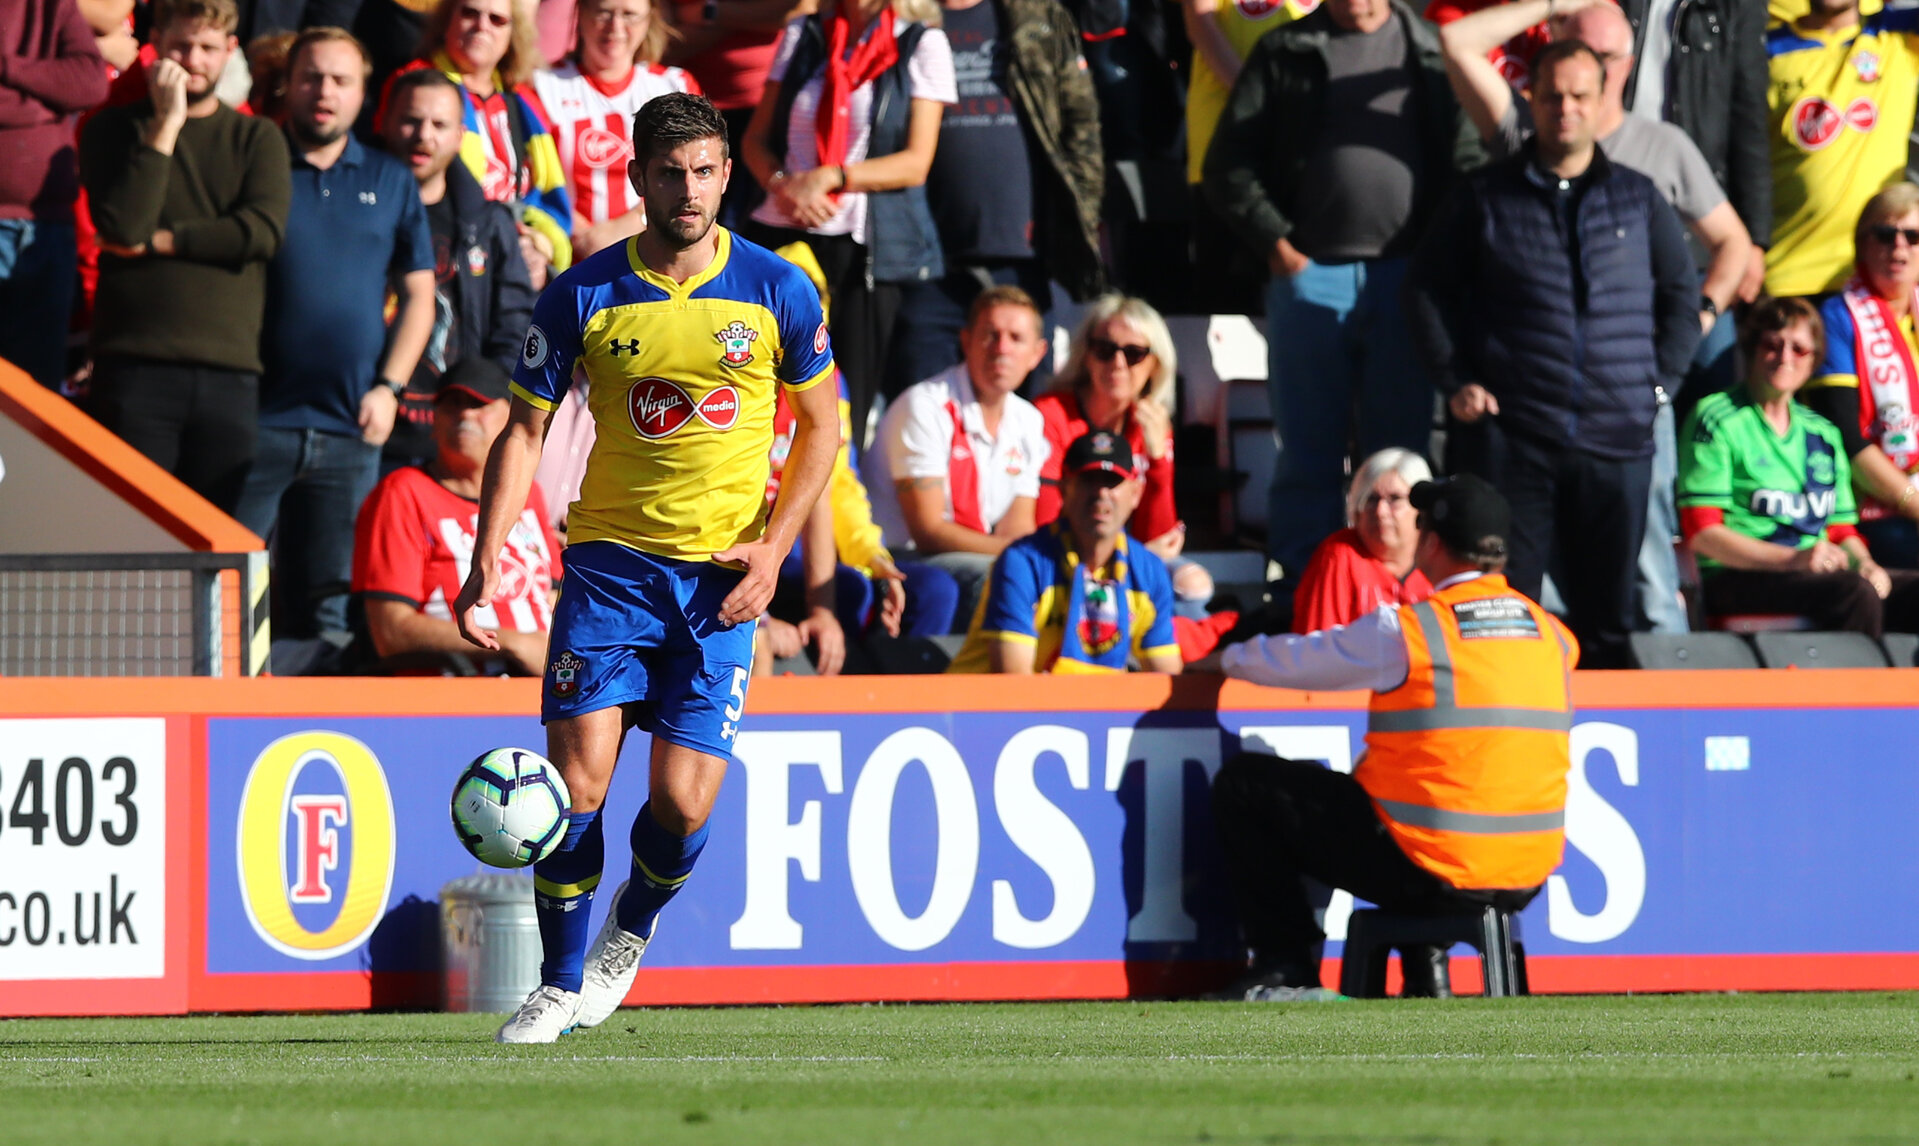 BOURNEMOUTH, ENGLAND - OCTOBER 20: Jack Stephens of Southampton during the Premier League match between AFC Bournemouth and Southampton FC at Vitality Stadium on October 20, 2018 in Bournemouth, United Kingdom. (Photo by Matt Watson/Southampton FC via Getty Images)